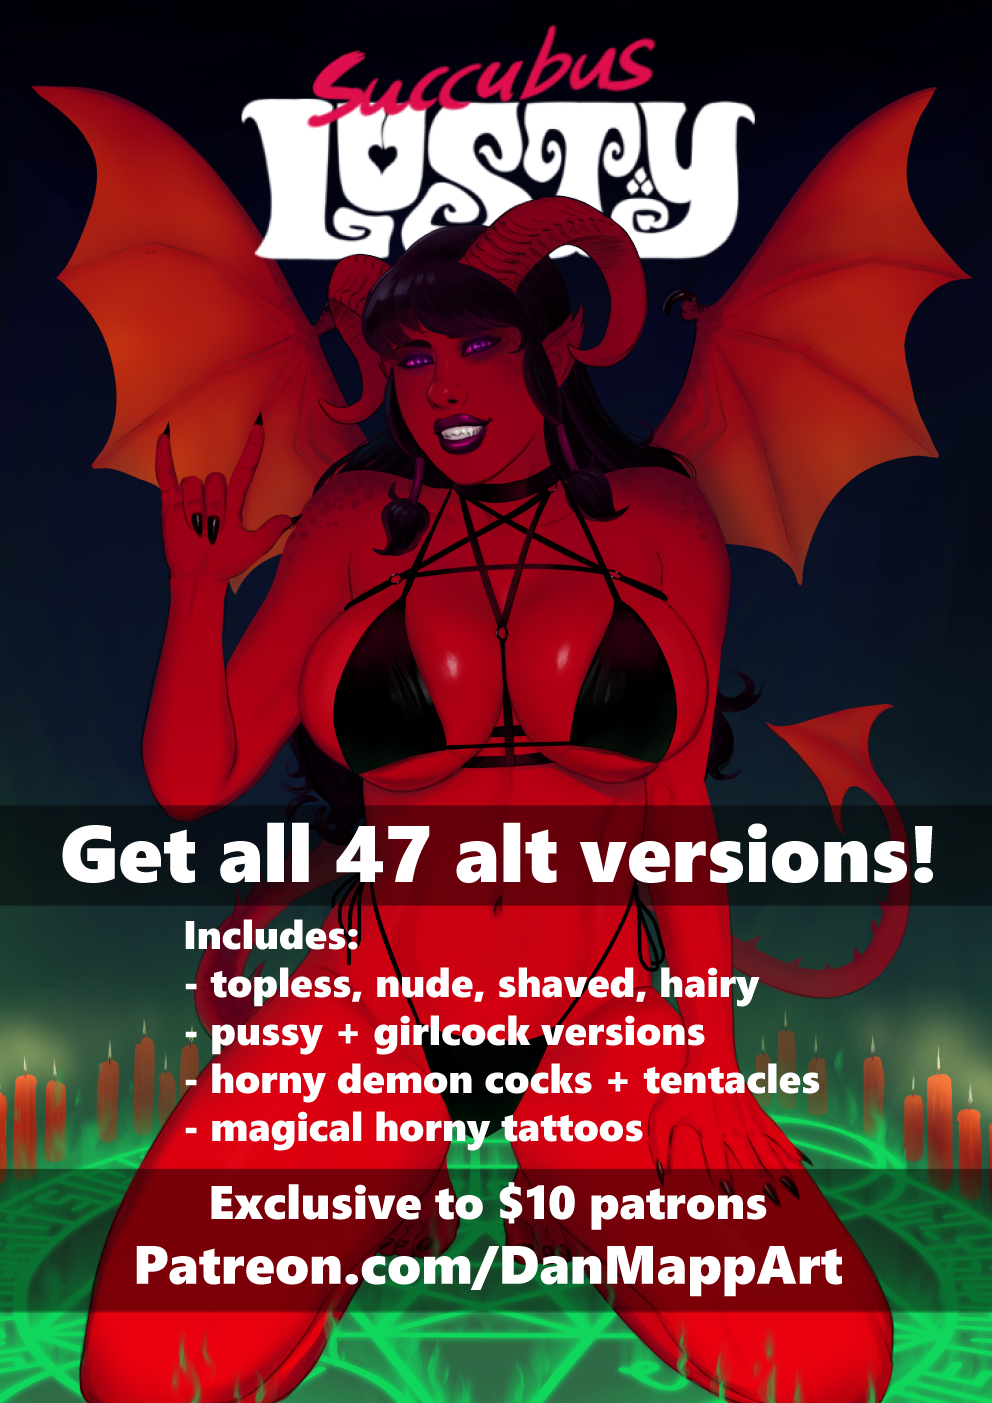 Join Patreon.com/DanMappArt for all 47 alt versions! You also get updates on Lusty Chapter 4!